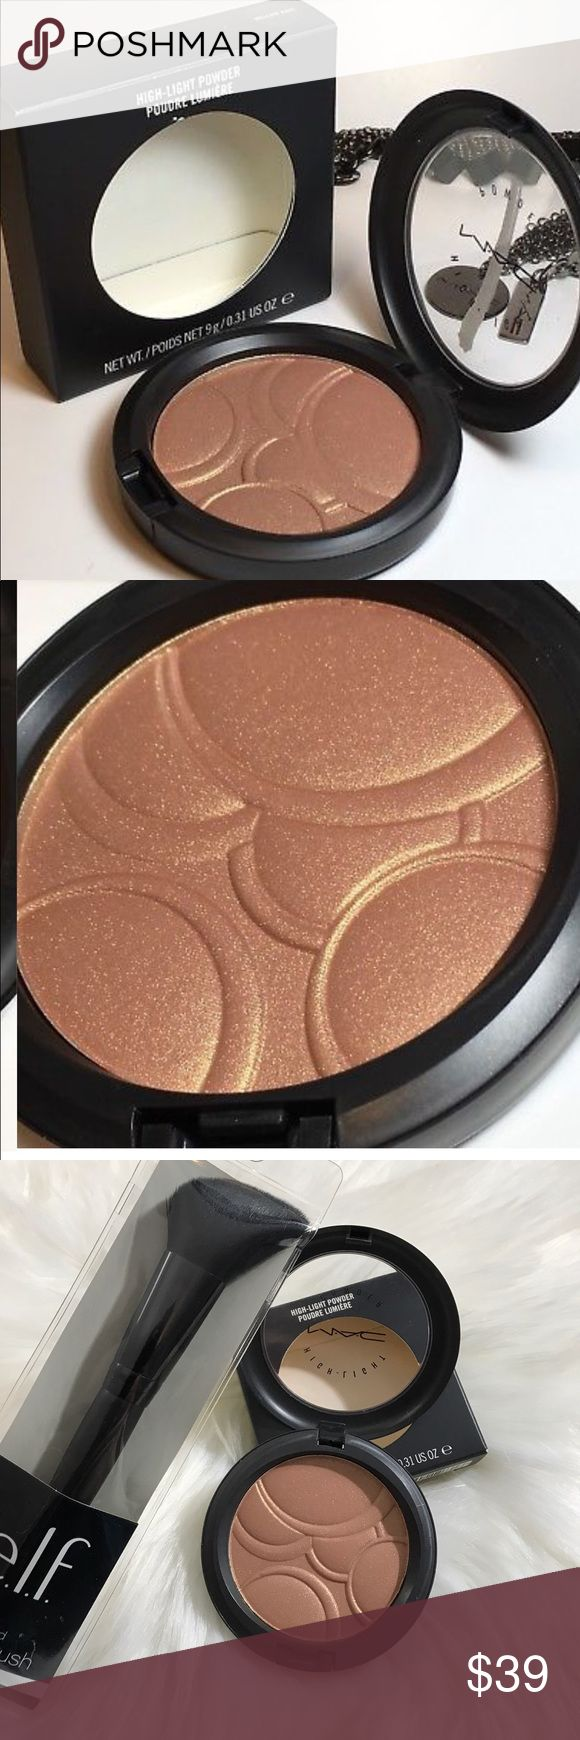 💄💯Mac x2 limited edition 'mellow rave' NIB ✨💯 New in box limited ! Highlighting mineral bronzer powder ! So beautiful new ! No longer sold in stores collectors item also ! Add to bundle for deals & offers comes with Elf brush brush and full gift ! Top trusted MUA& posh ambassador ! MAC Cosmetics Makeup Bronzer